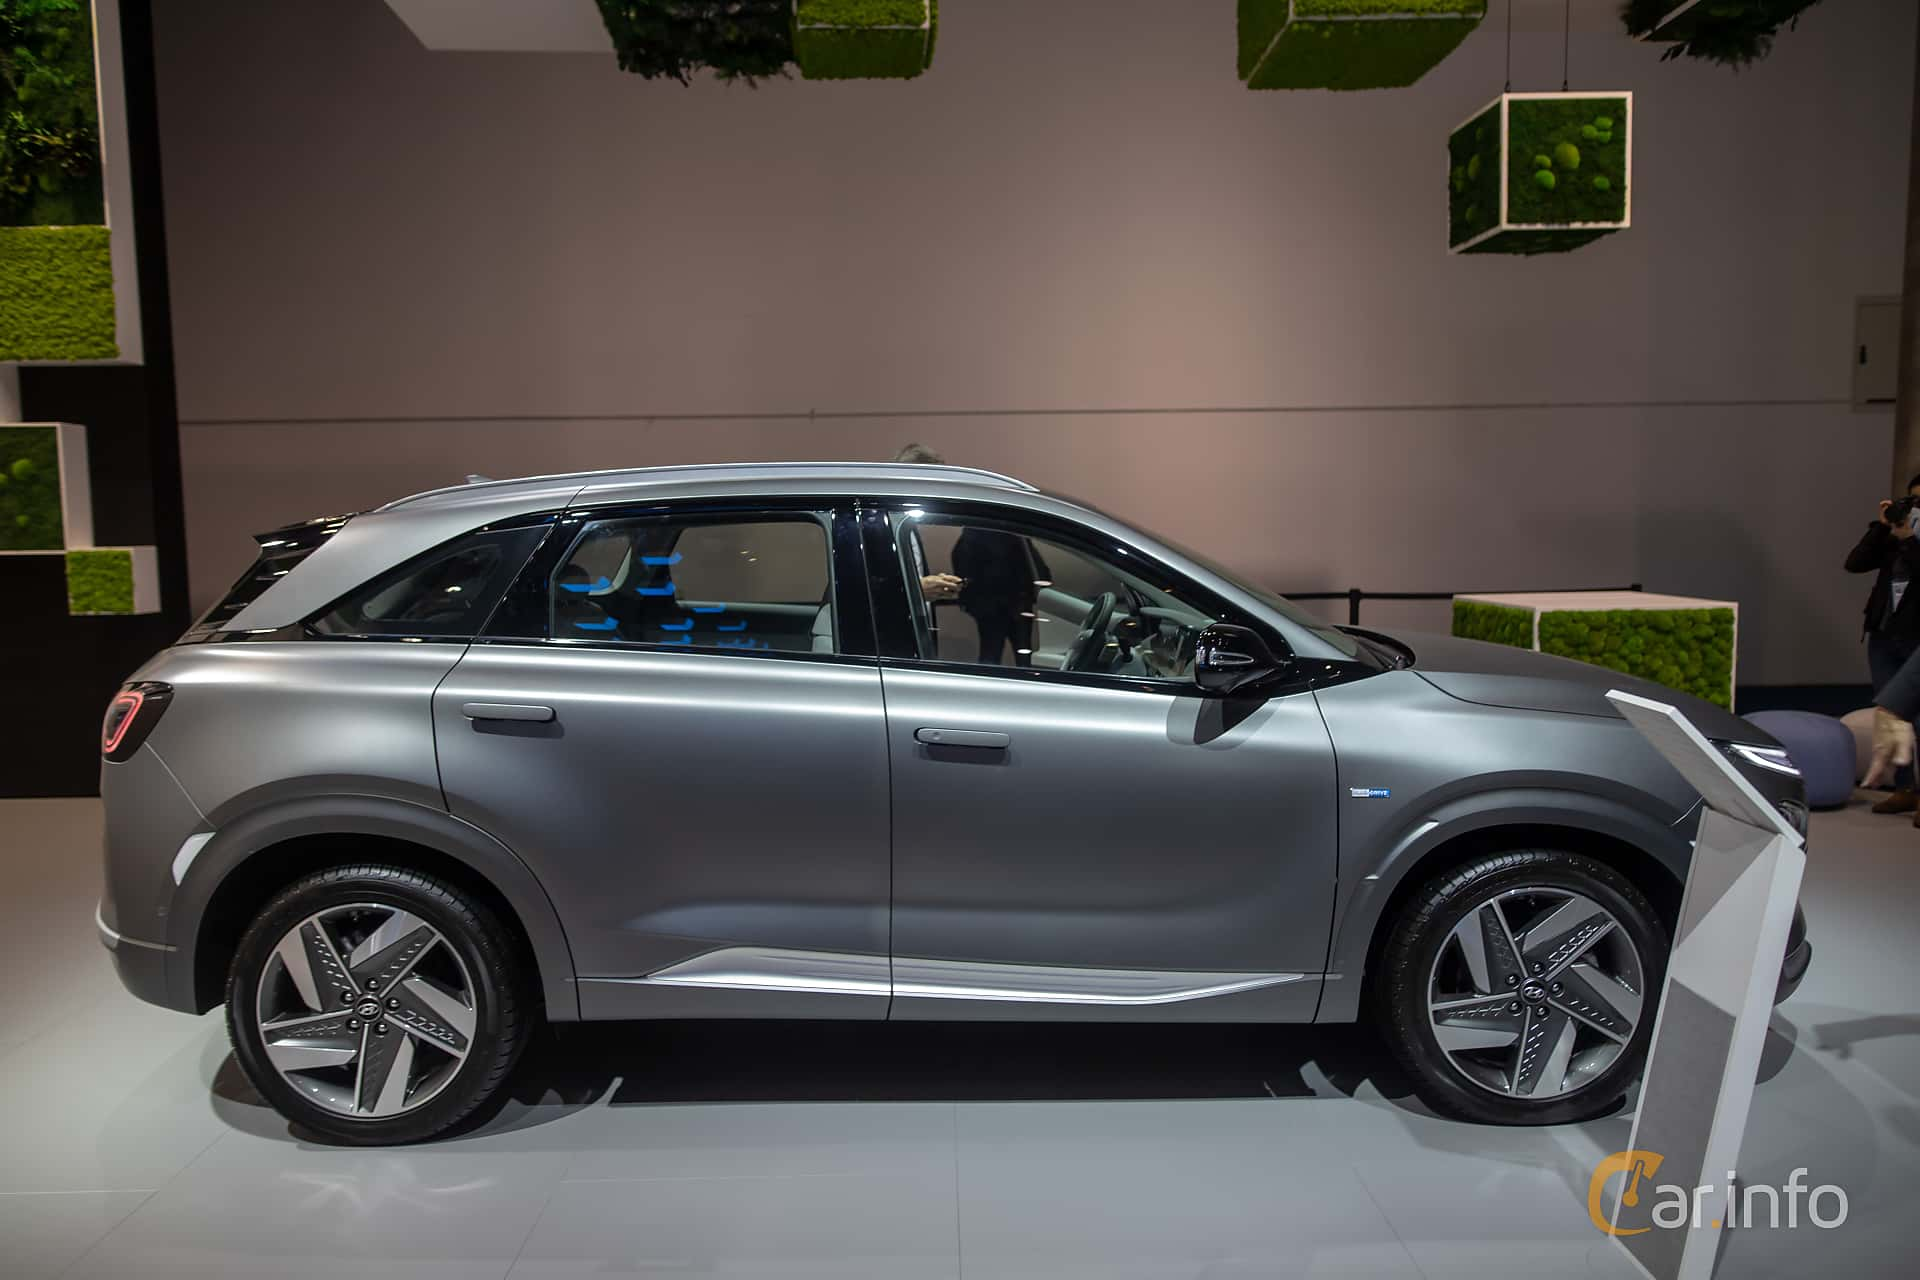 Hyundai Nexo FuelCell Single Speed, 163hk, 2020 at IAA 2019